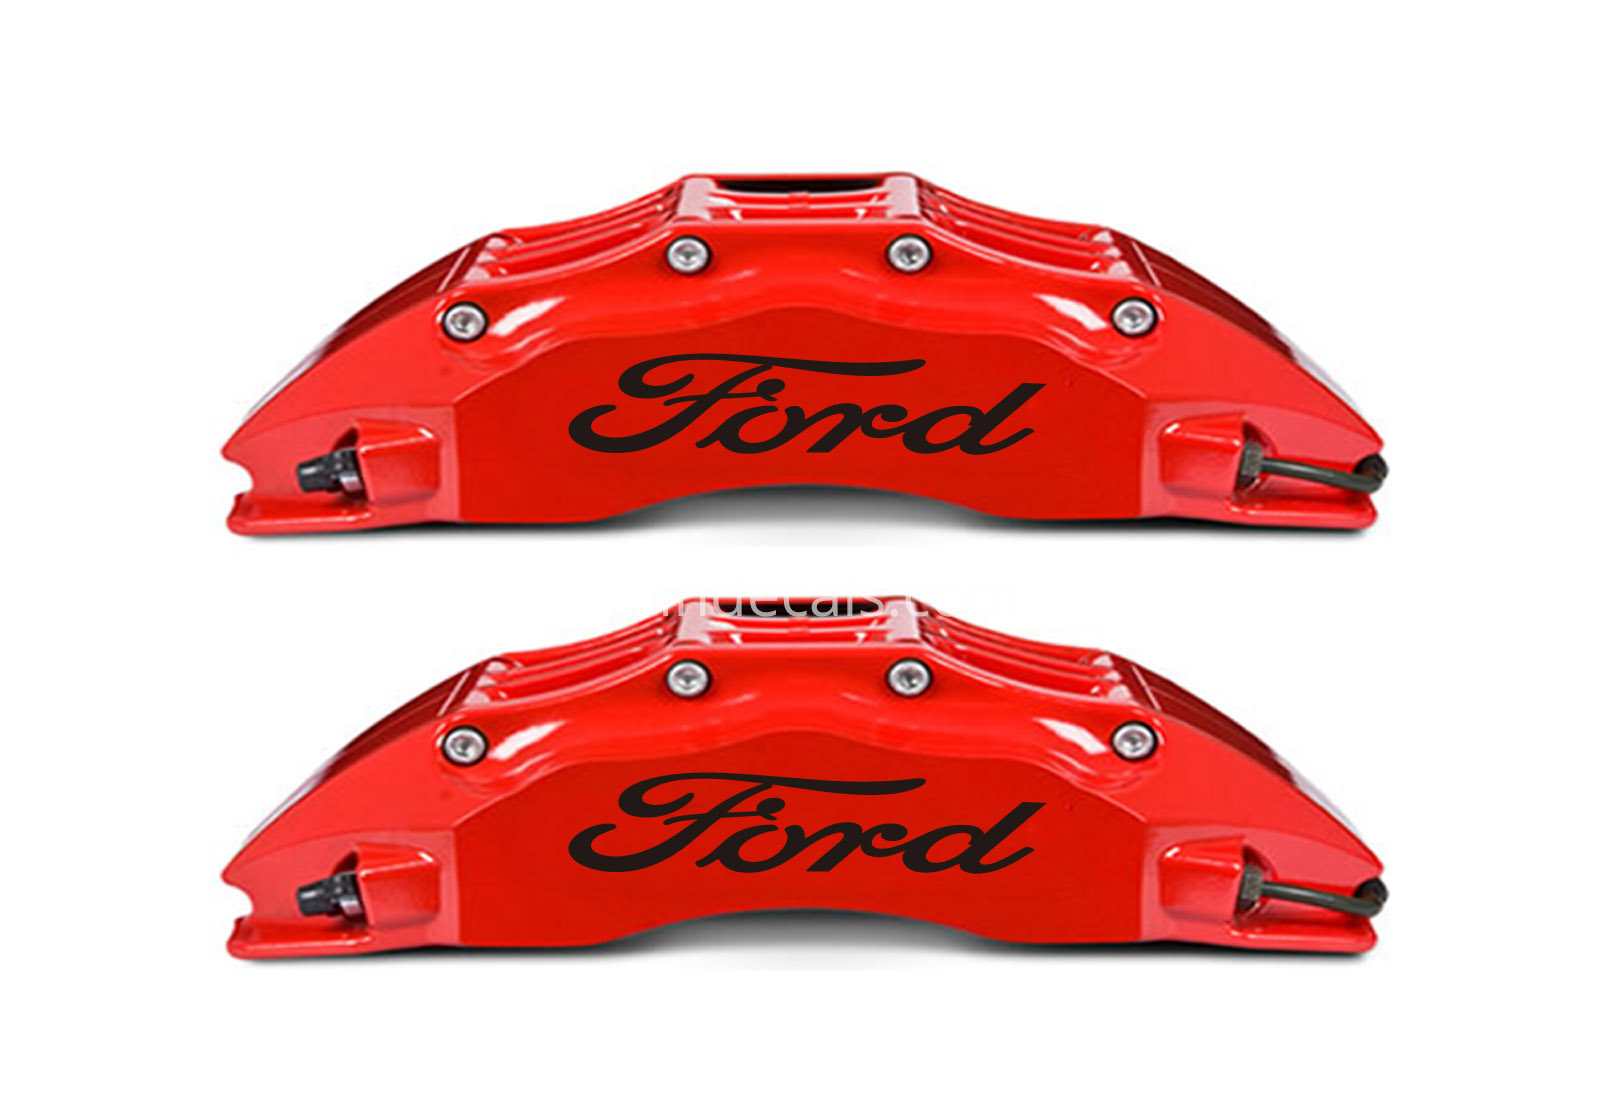 6 x Ford Stickers for Brakes - Black